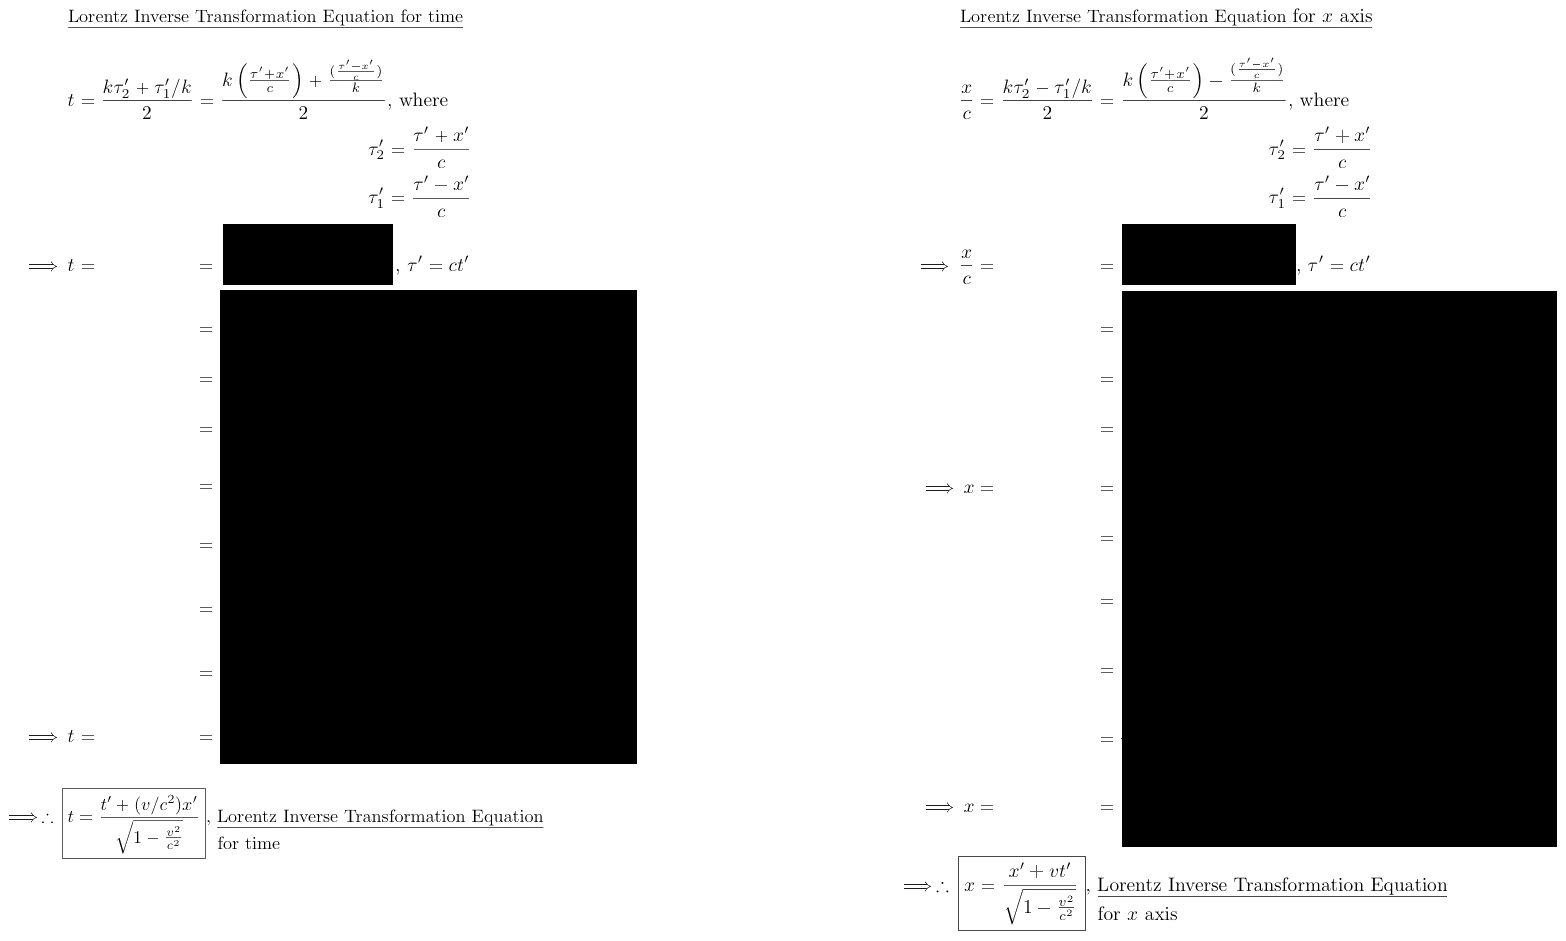 Minkowski's and Bondi's derivation of the Lorentz time-distance Transformation Equations